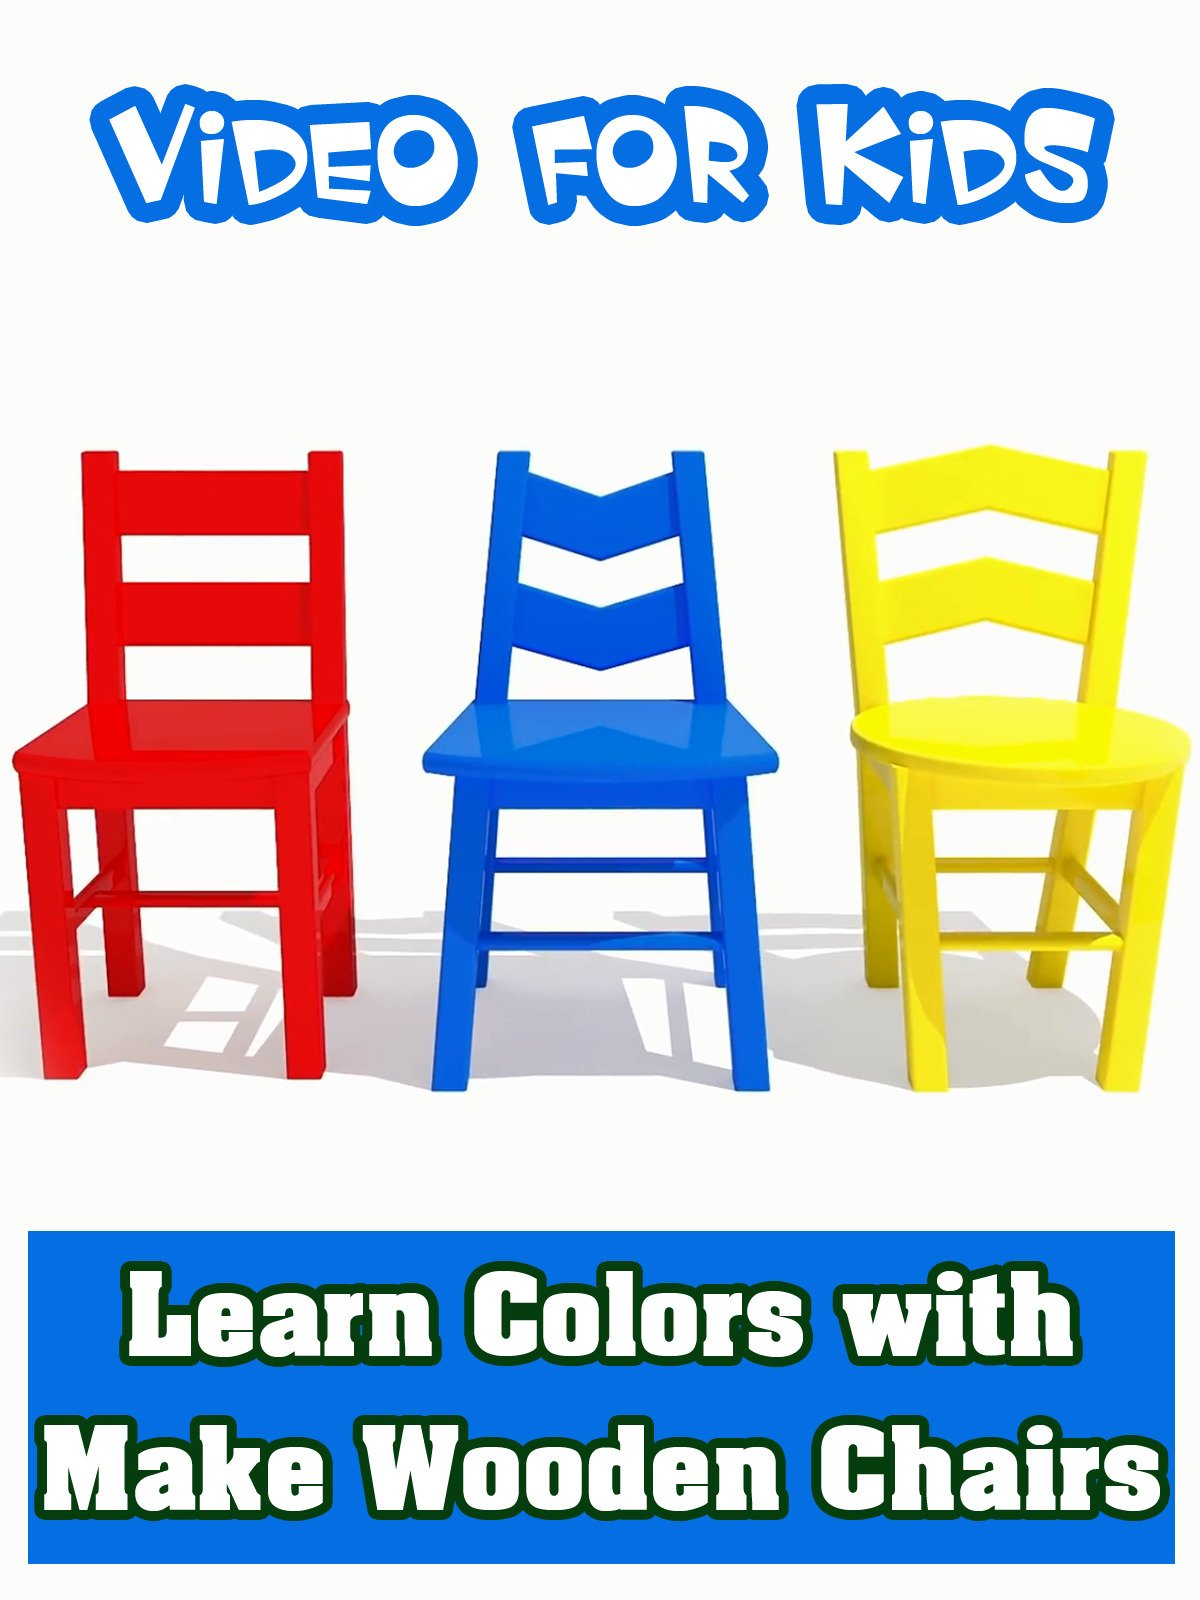 Learn Colors with Make Wooden Chairs